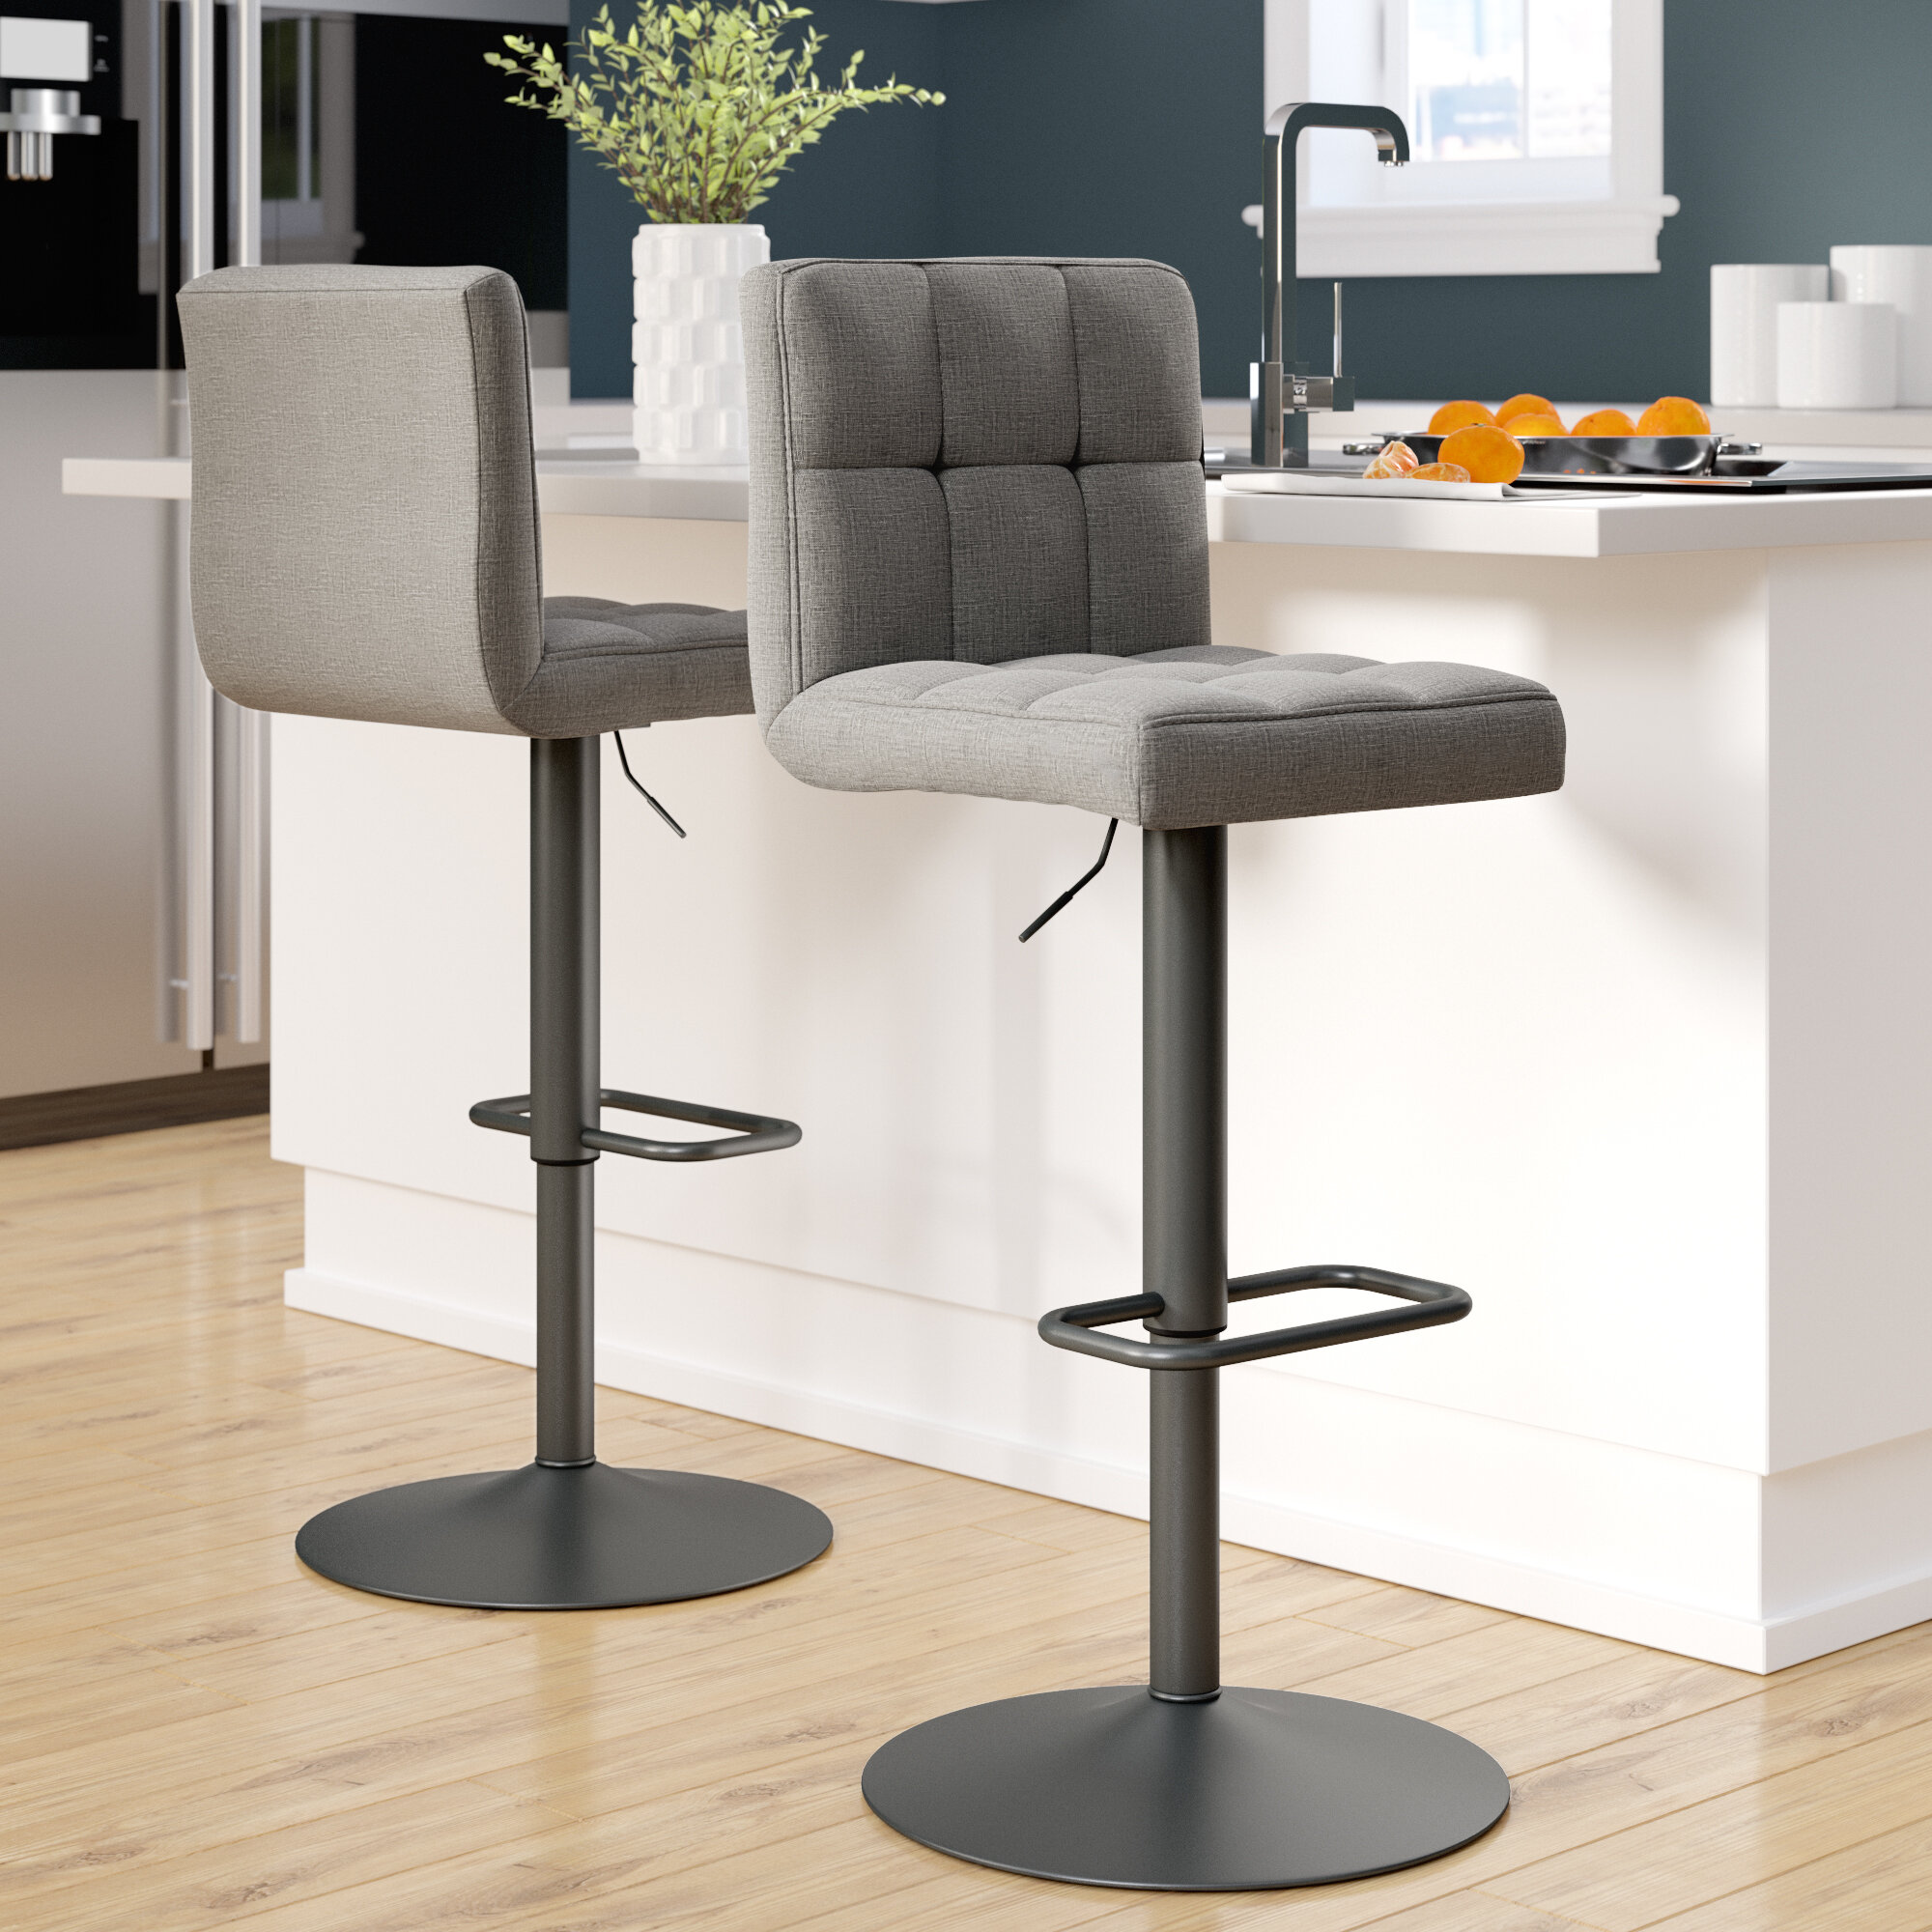 Astounding Ebern Designs Faustina Adjustable Height Swivel Bar Stool Ocoug Best Dining Table And Chair Ideas Images Ocougorg